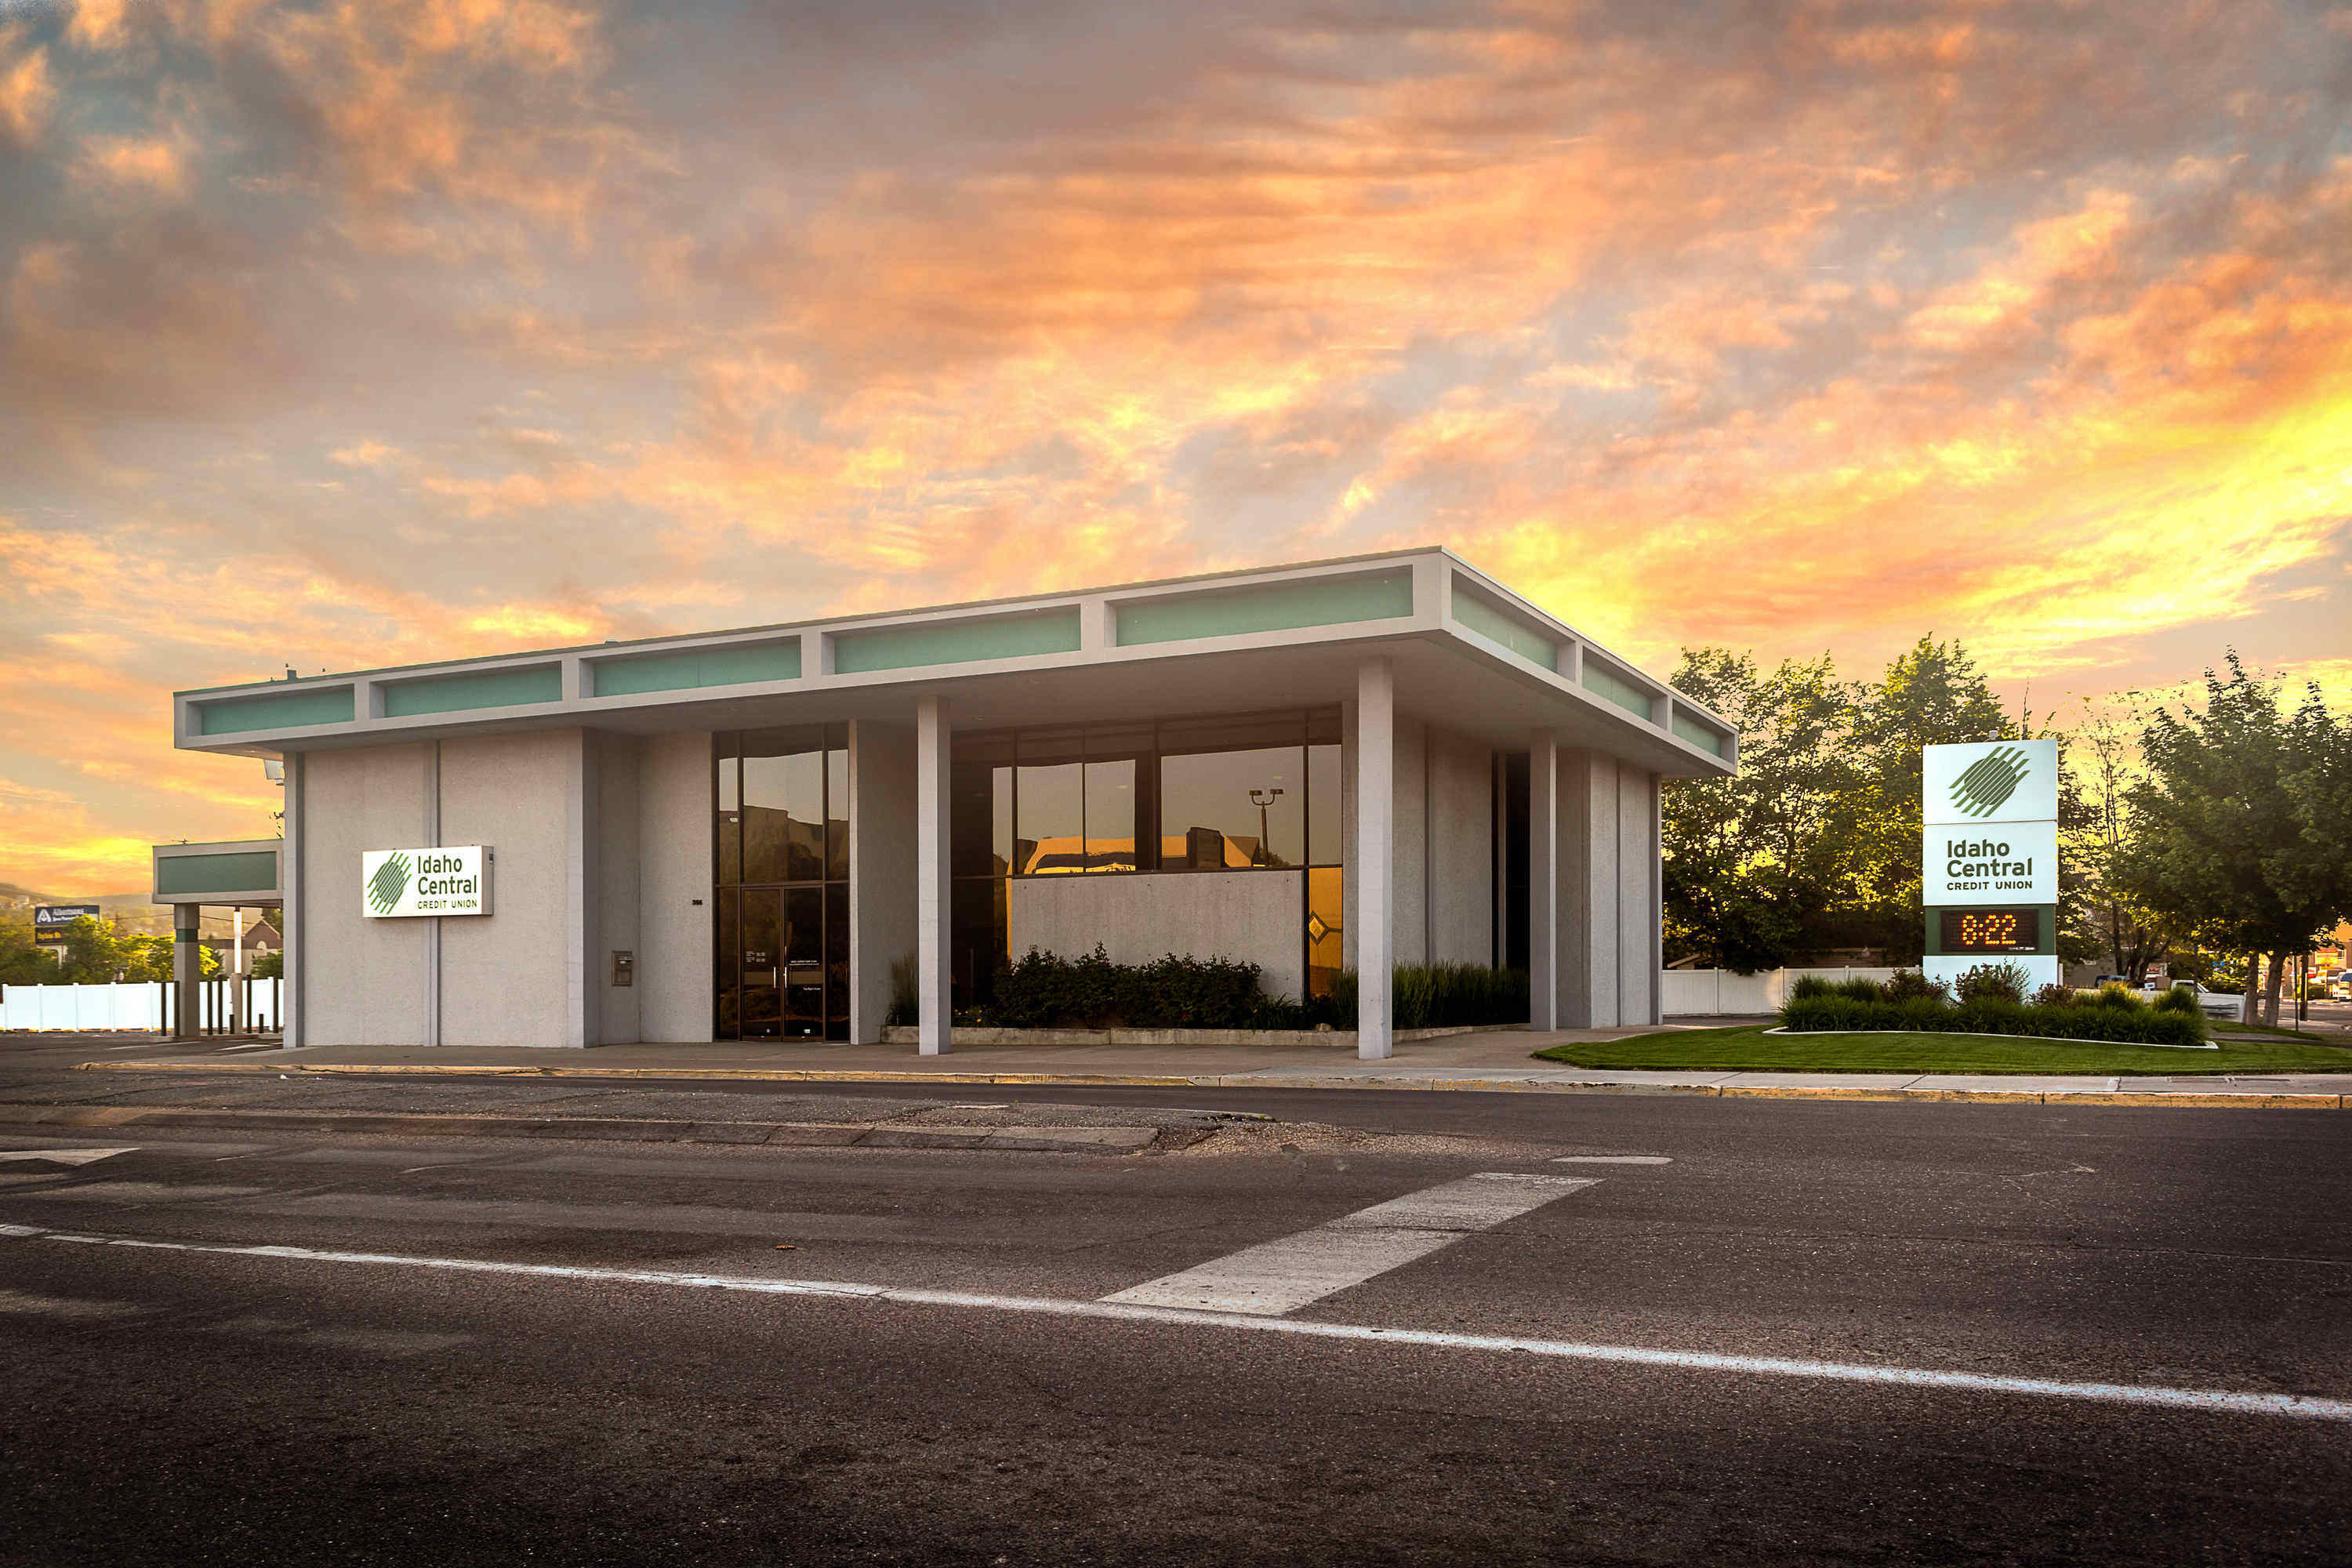 pocatello branch & atm - idaho central credit union